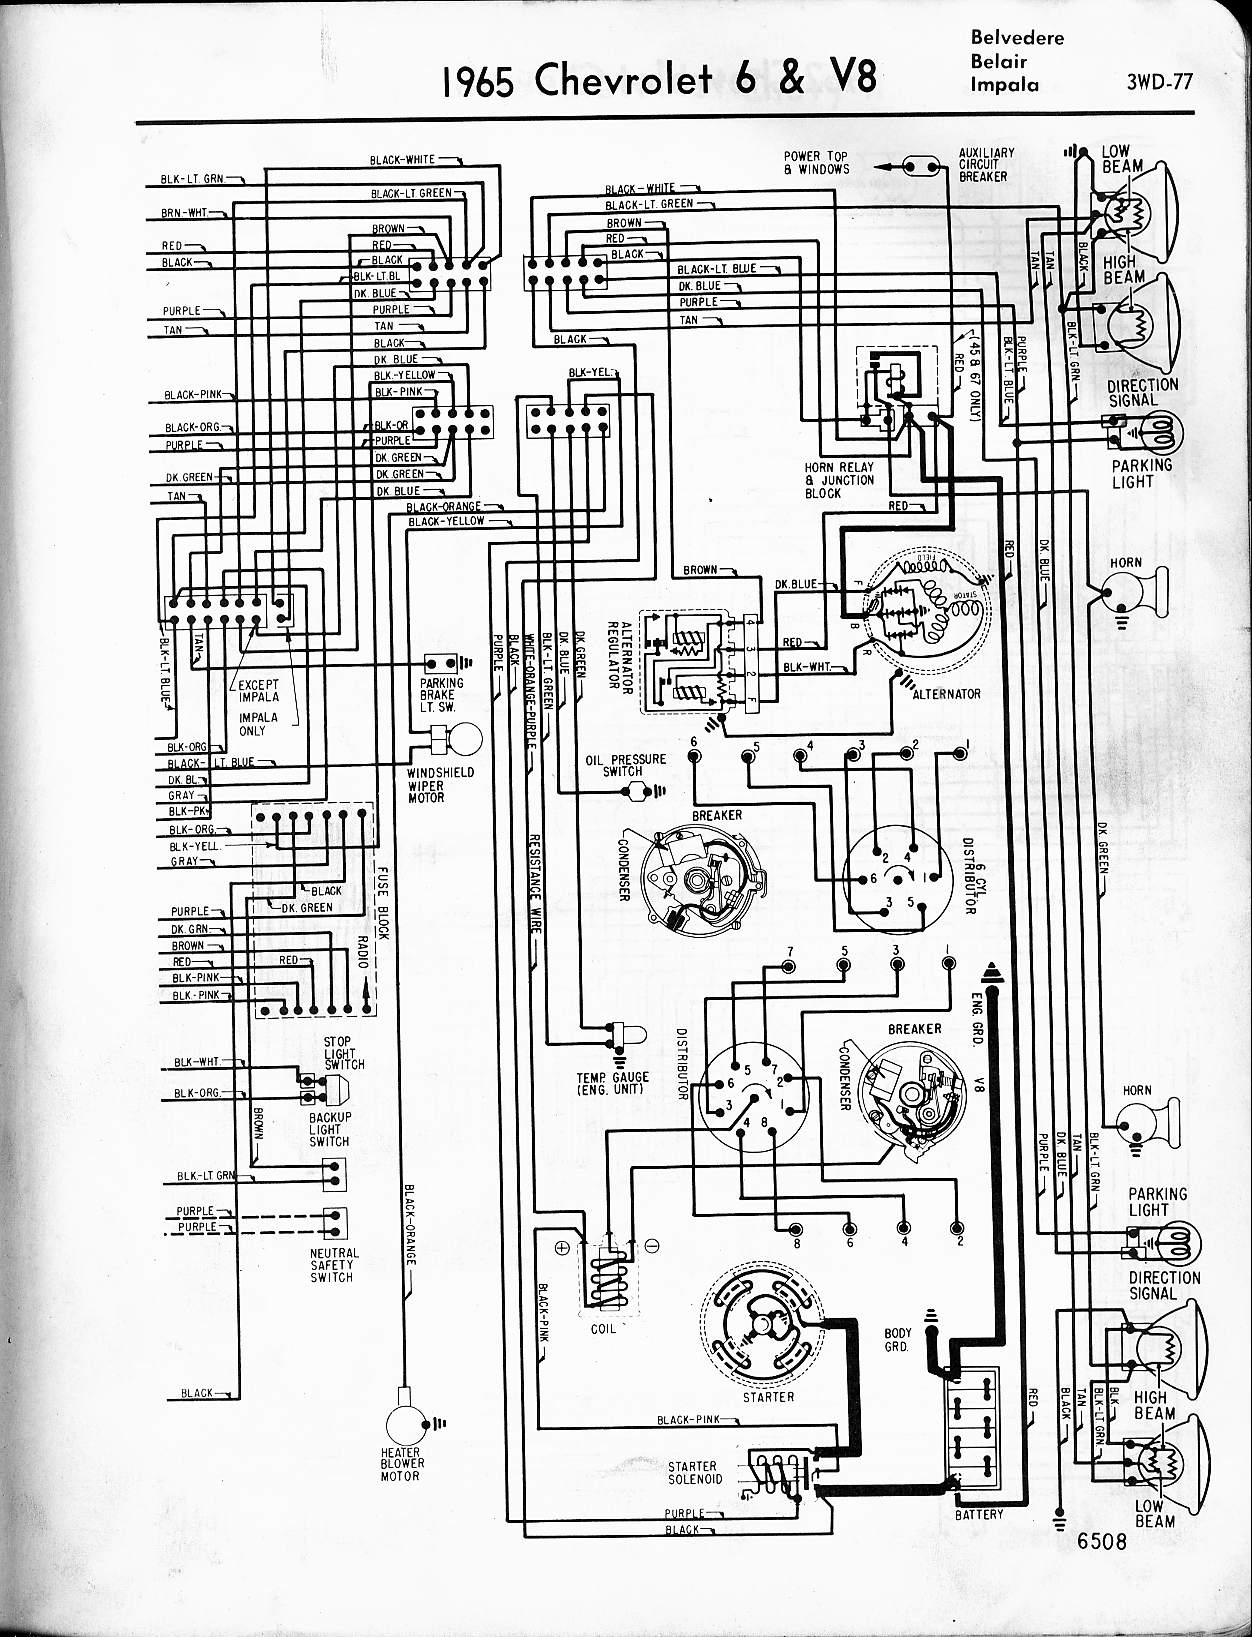 MWireChev65_3WD 077 chevy diagrams Ford Alternator Wiring Diagram at bakdesigns.co